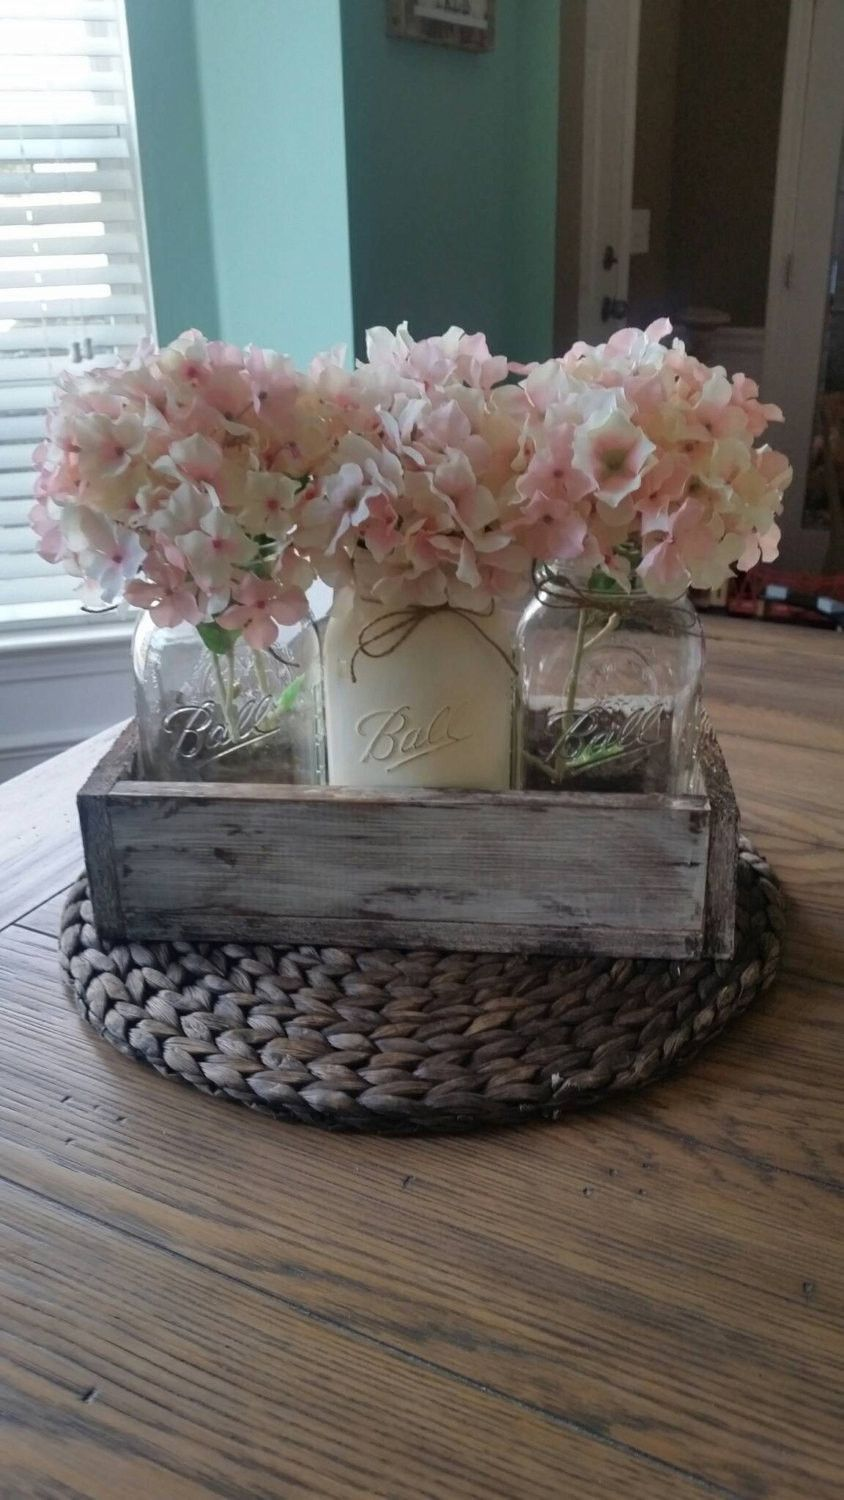 Mason Jar Centerpiece Mason Jar Table Decor Rustic Home Decor Rustic Wedding Decor Wedding Centerp Cheap Home Decor Rustic Home Decor Home Decor Items